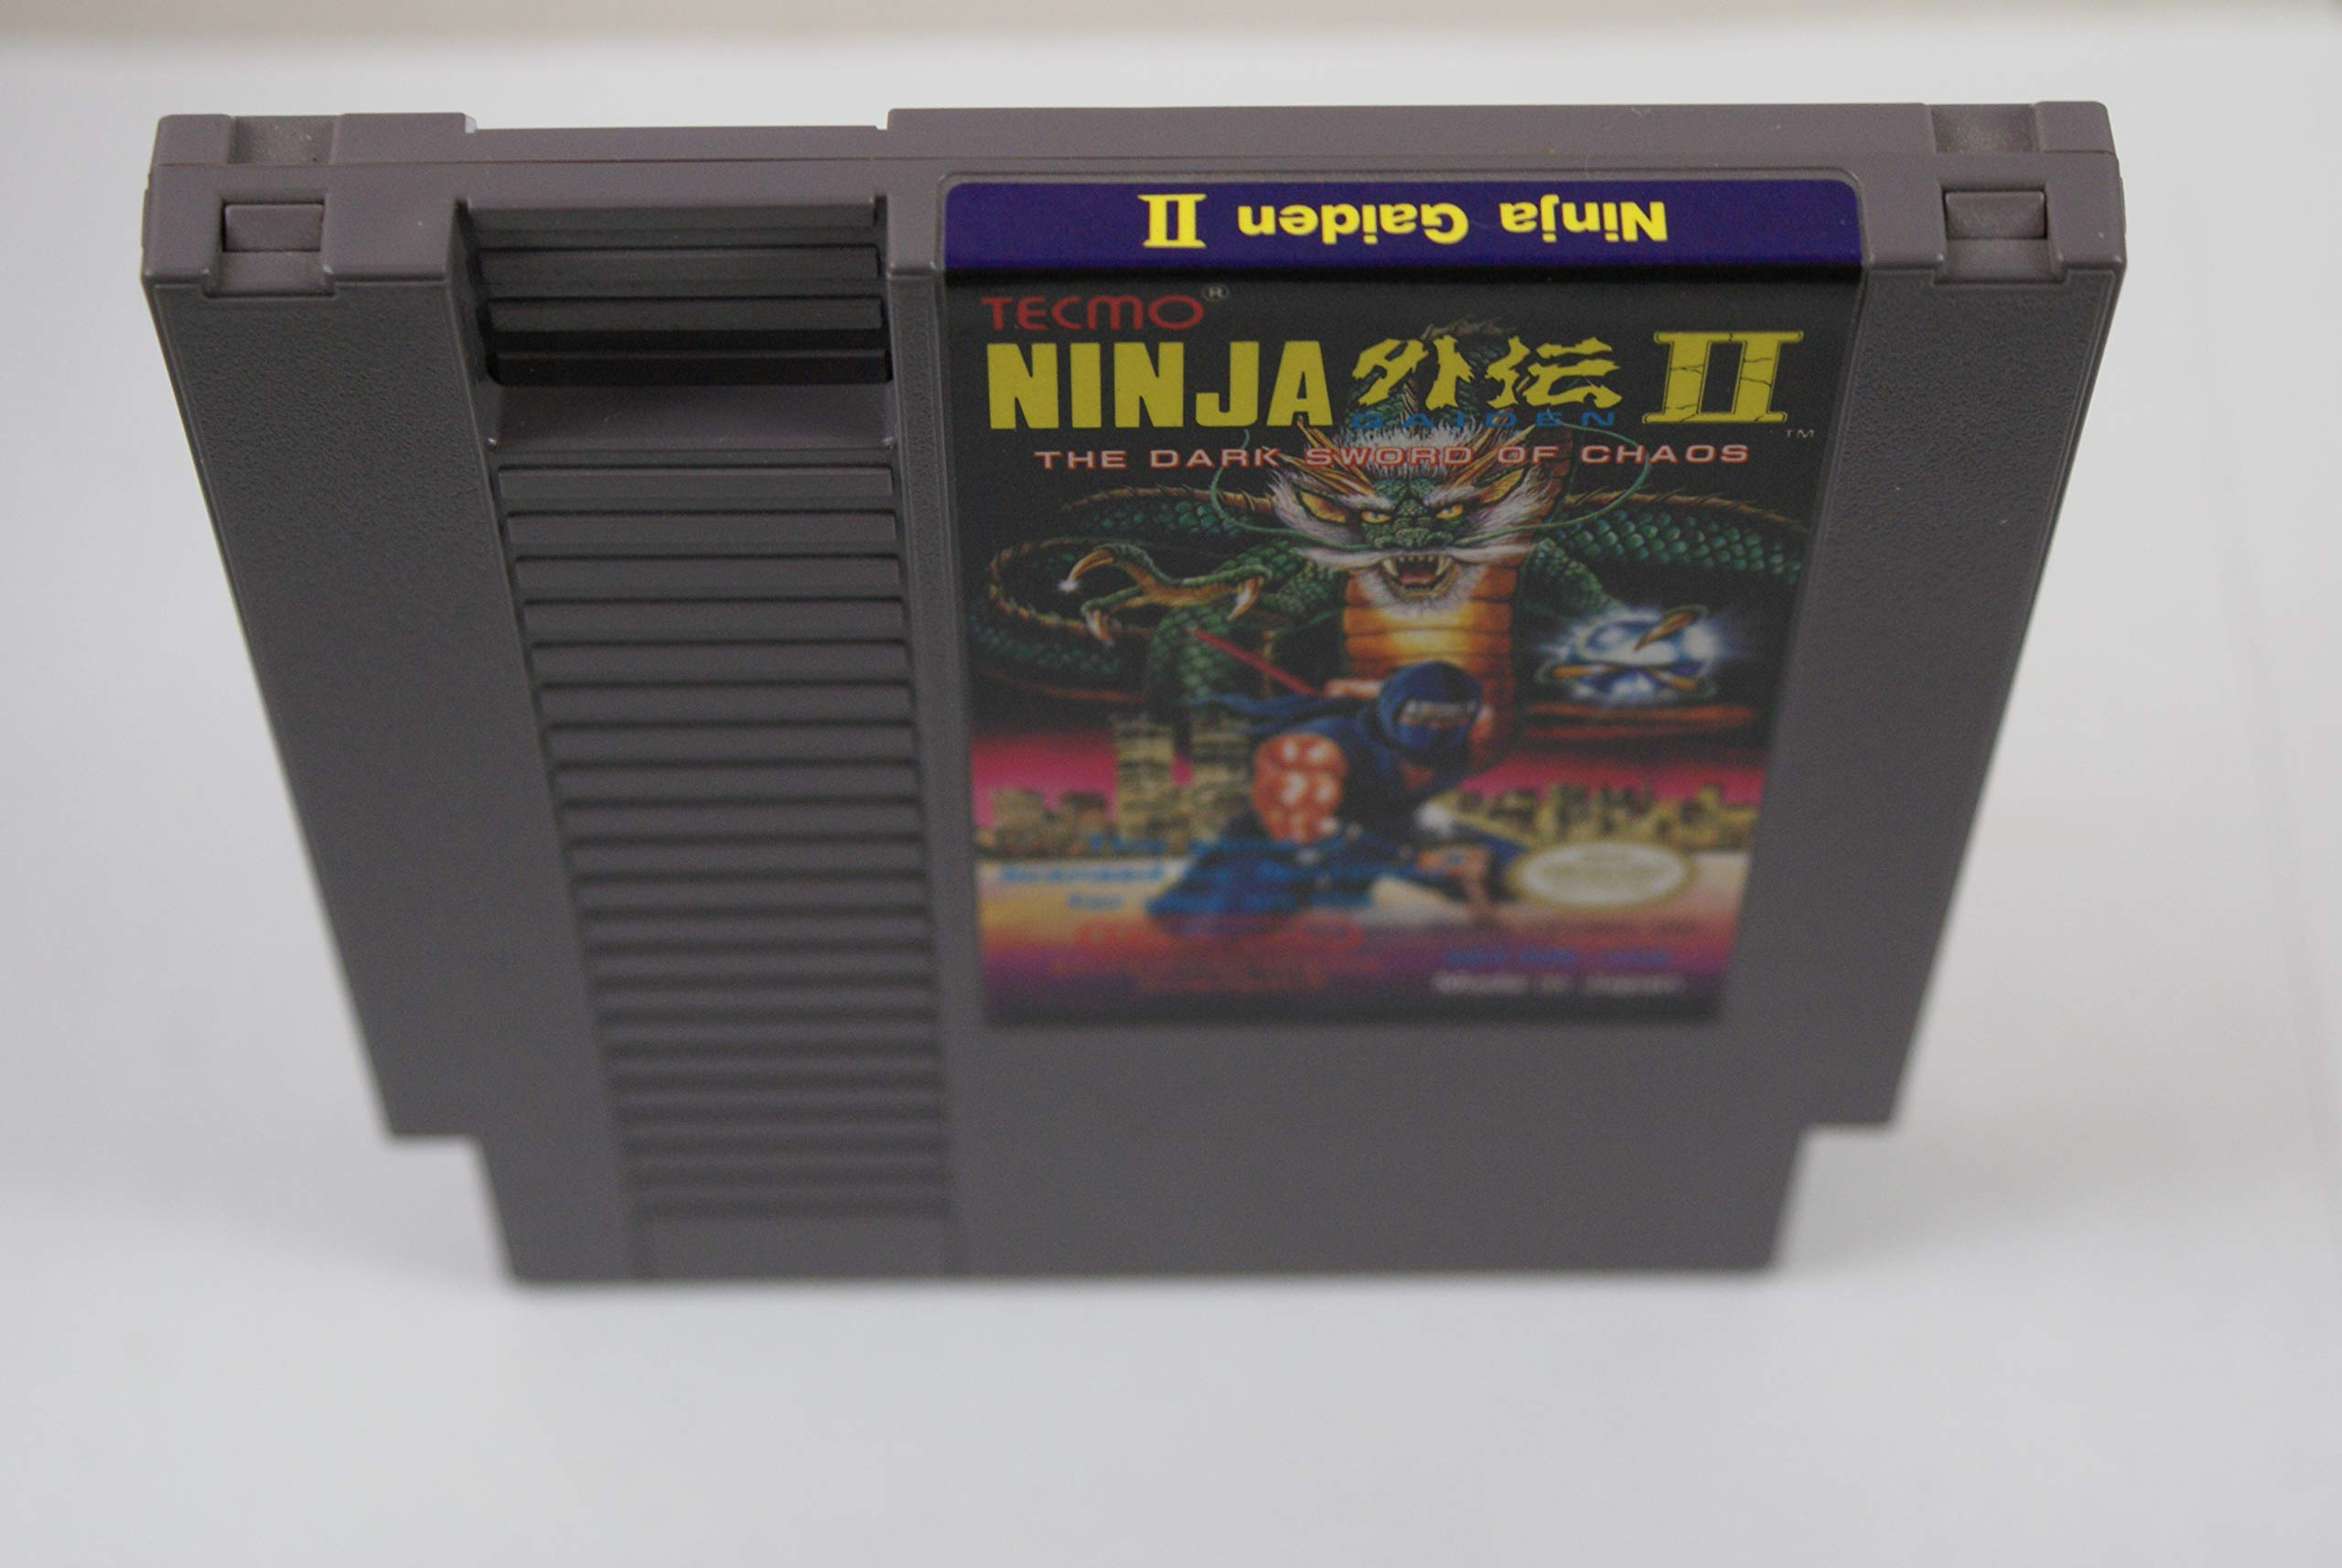 Amazon.com: NES Ninja Gaiden II Video Game USED (Certified ...